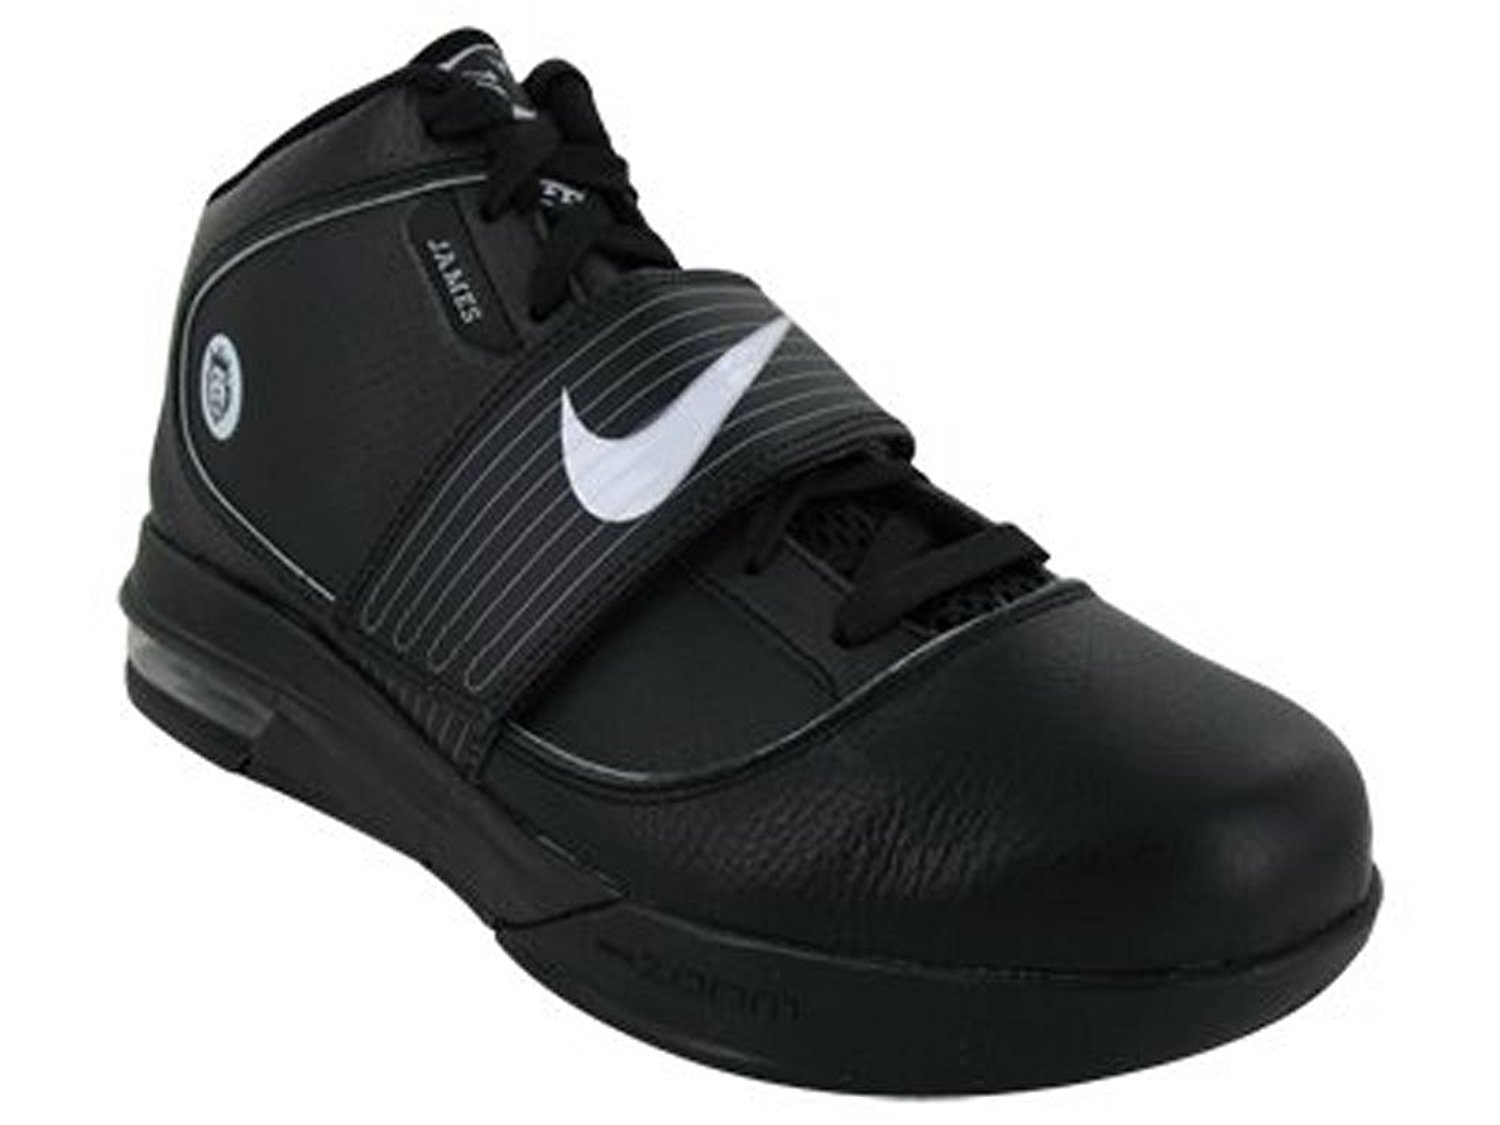 8931995e05000c Get Quotations · Nike Men s NIKE ZOOM SOLDIER IV TB BASKETBALL SHOES ...